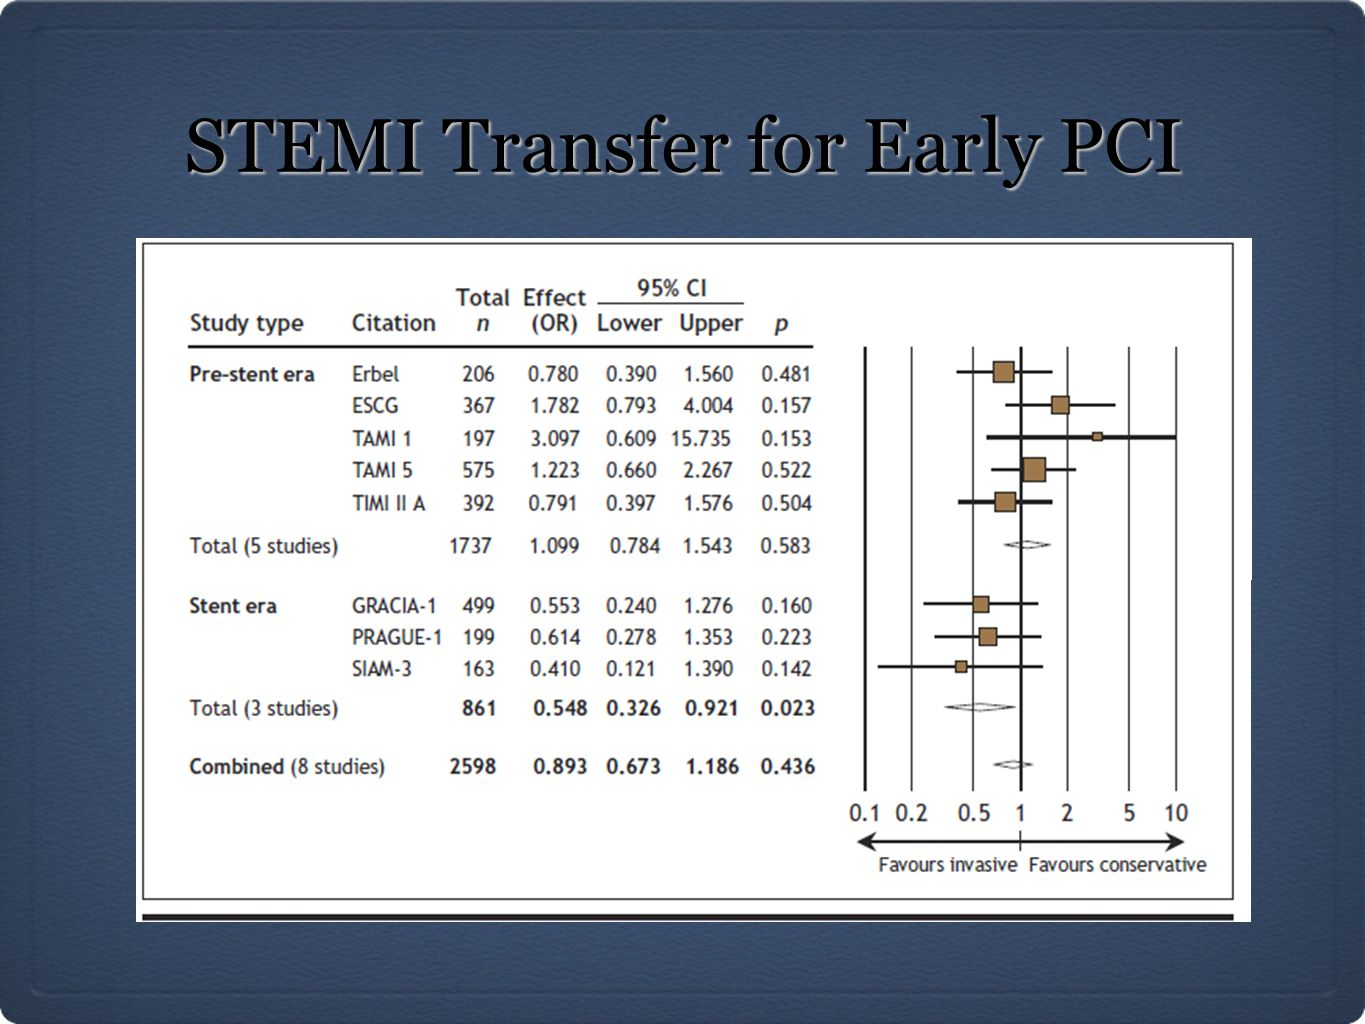 STEMI Transfer for Early PCI